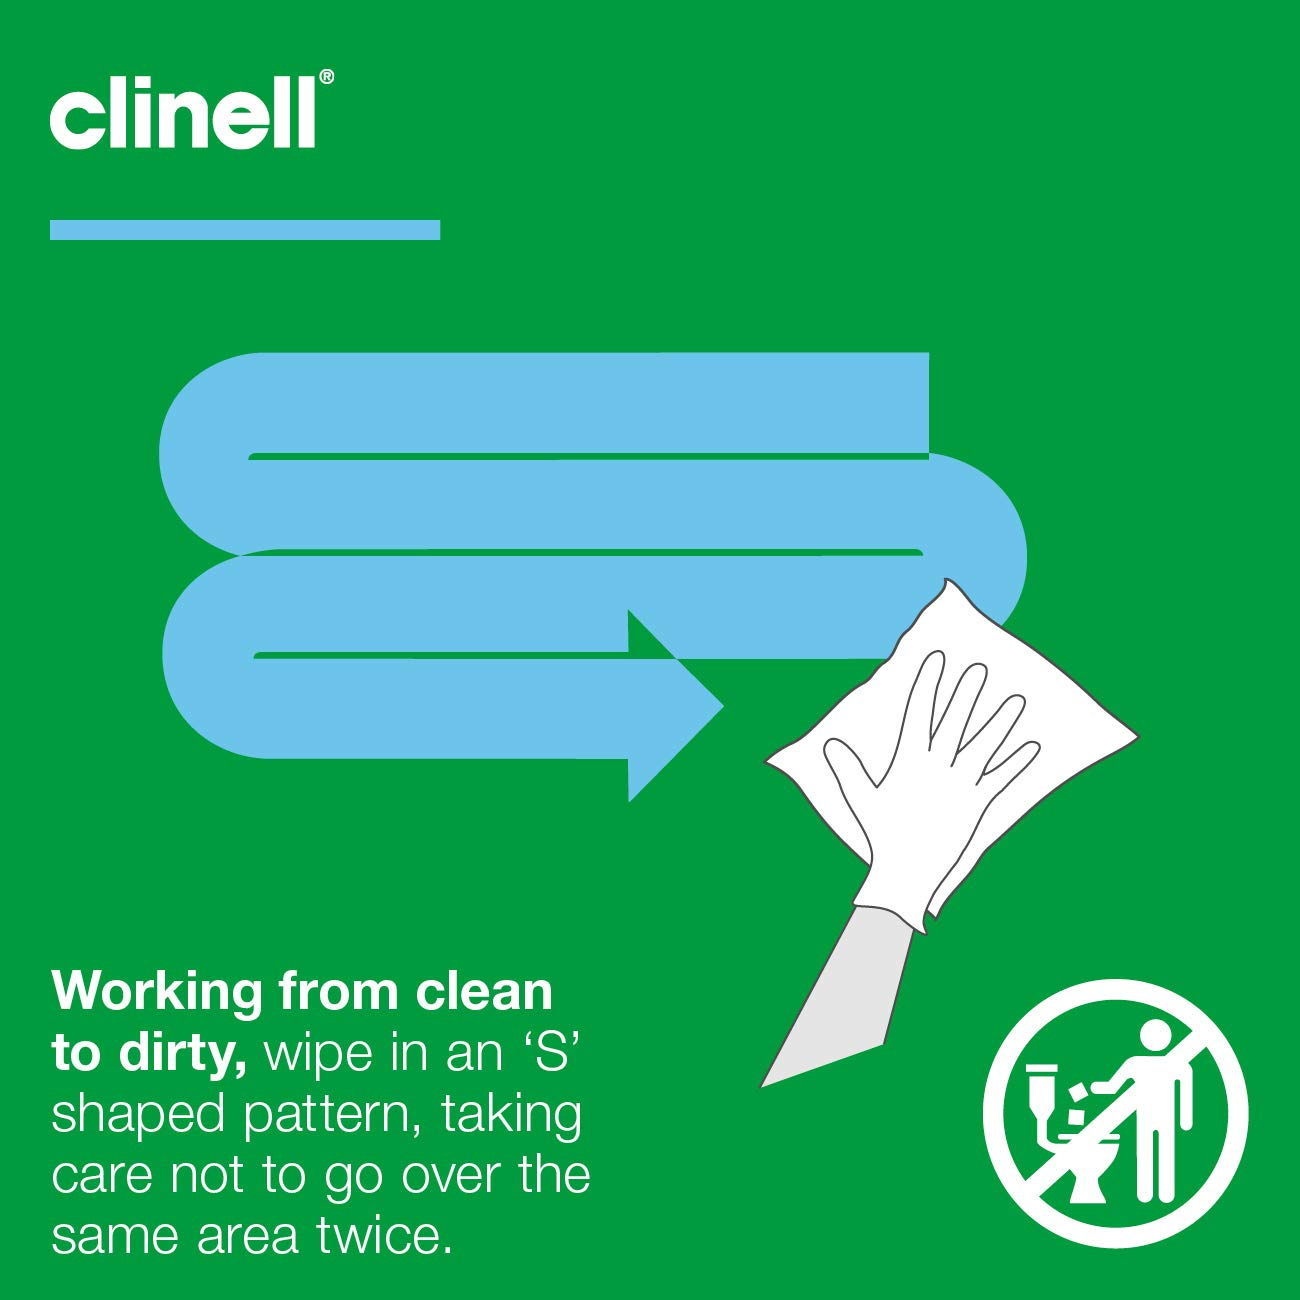 Clinell Universal Wipes – Refill Pack of 100 Wipes - Nayble Ltd